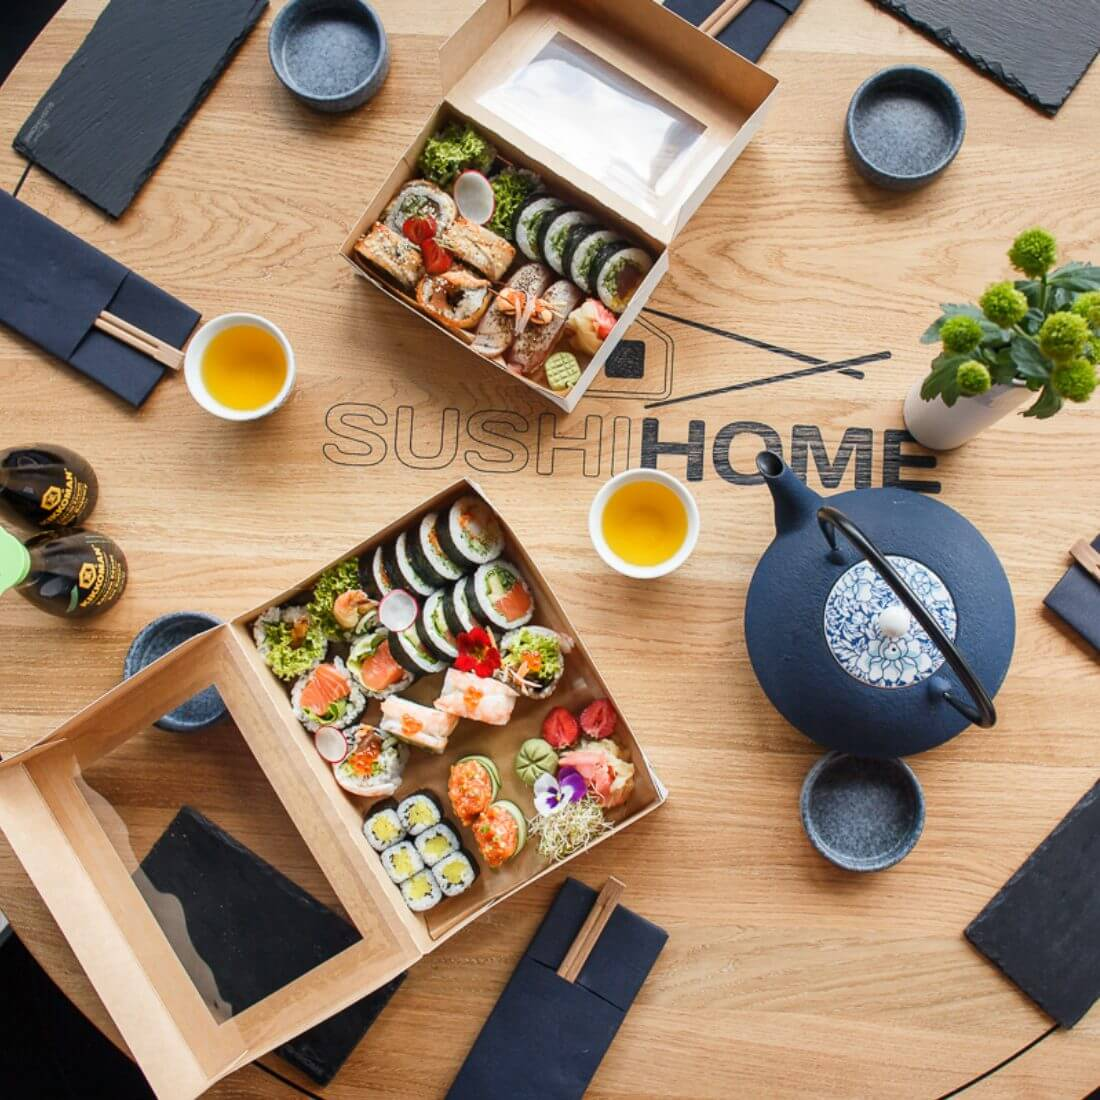 A paper sushi box as an alternative to plastic trays.